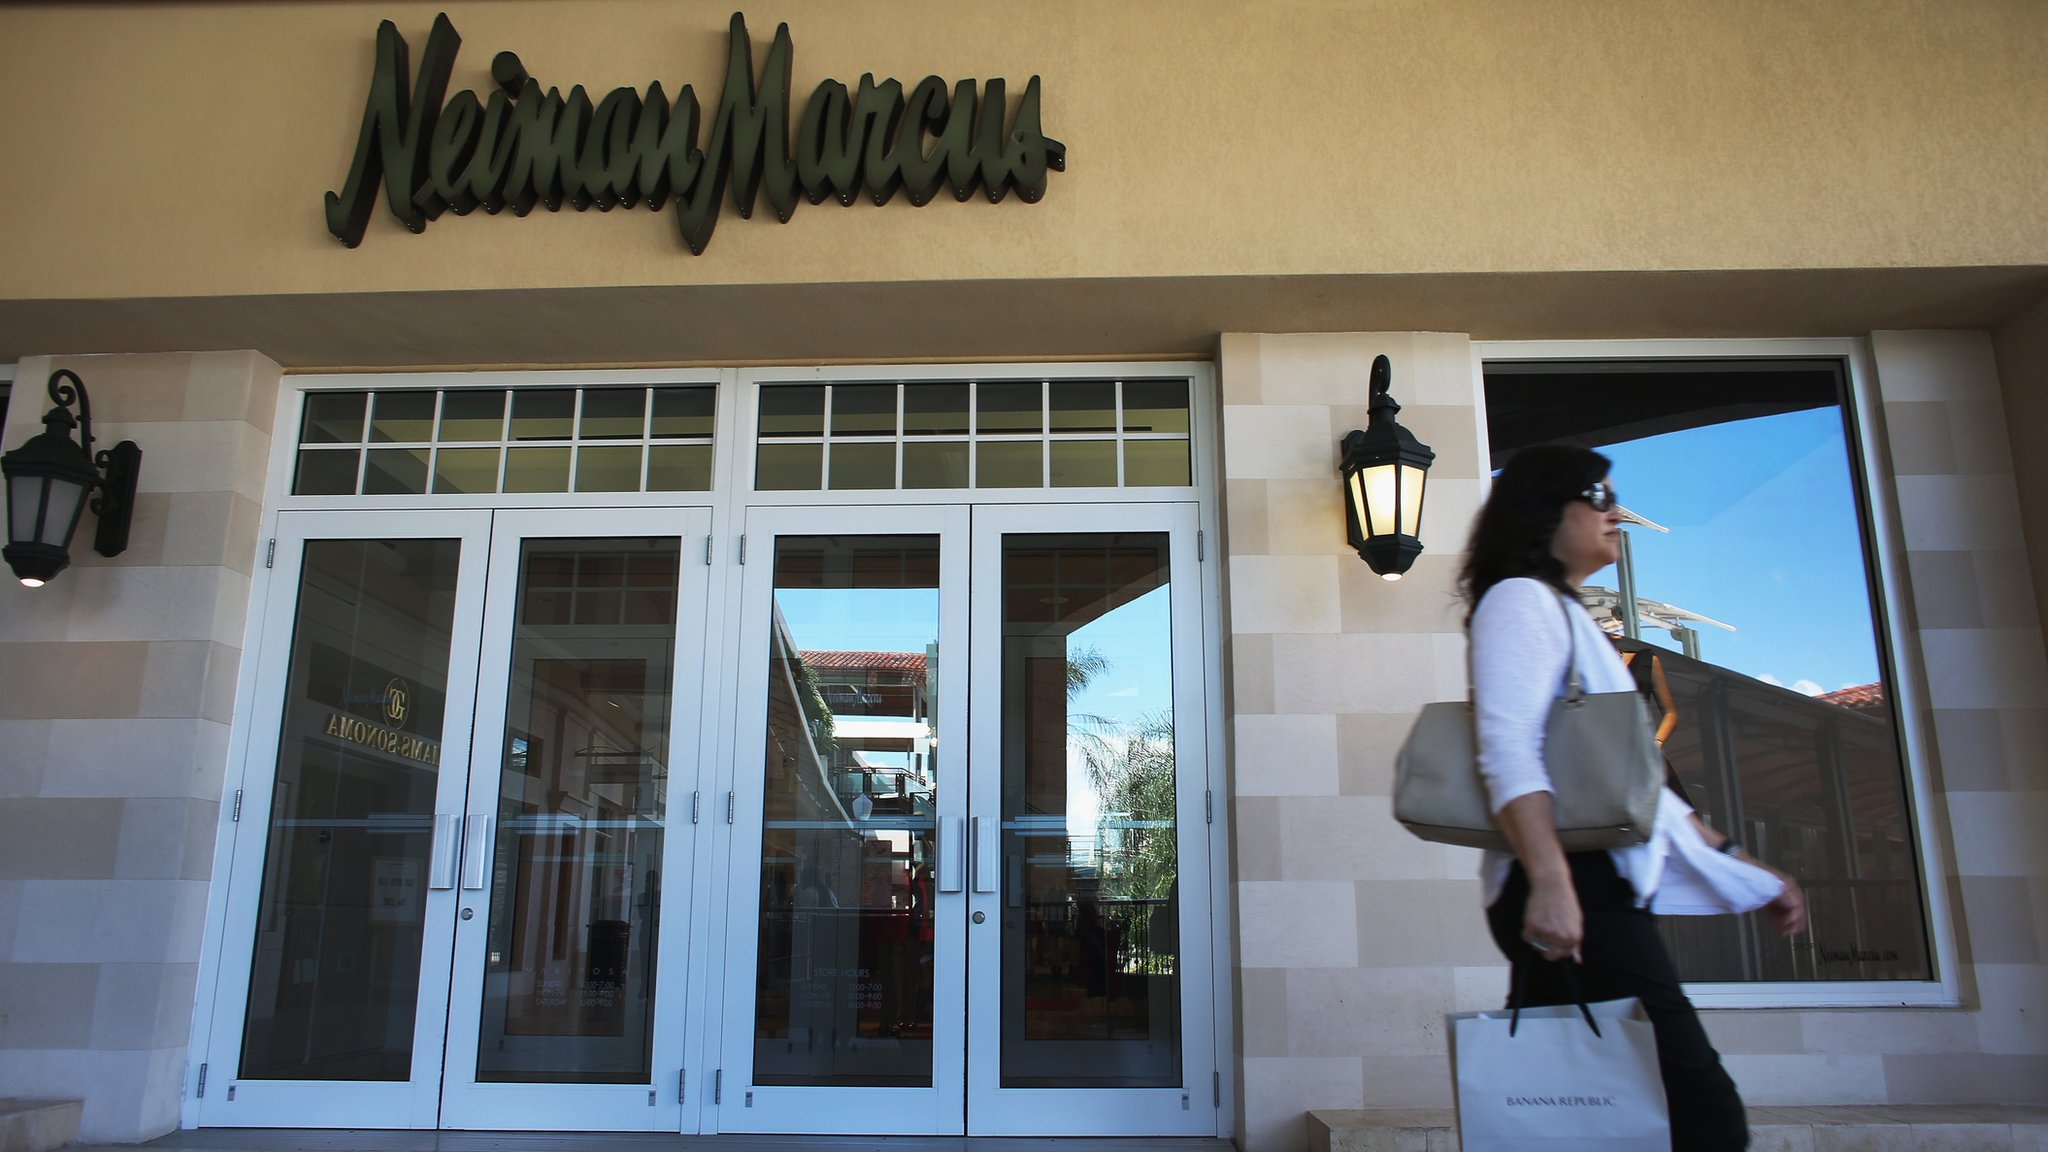 US luxury retailer Neiman Marcus has announced plans to float in New York after being bought in 2013 ahead of an IPO.